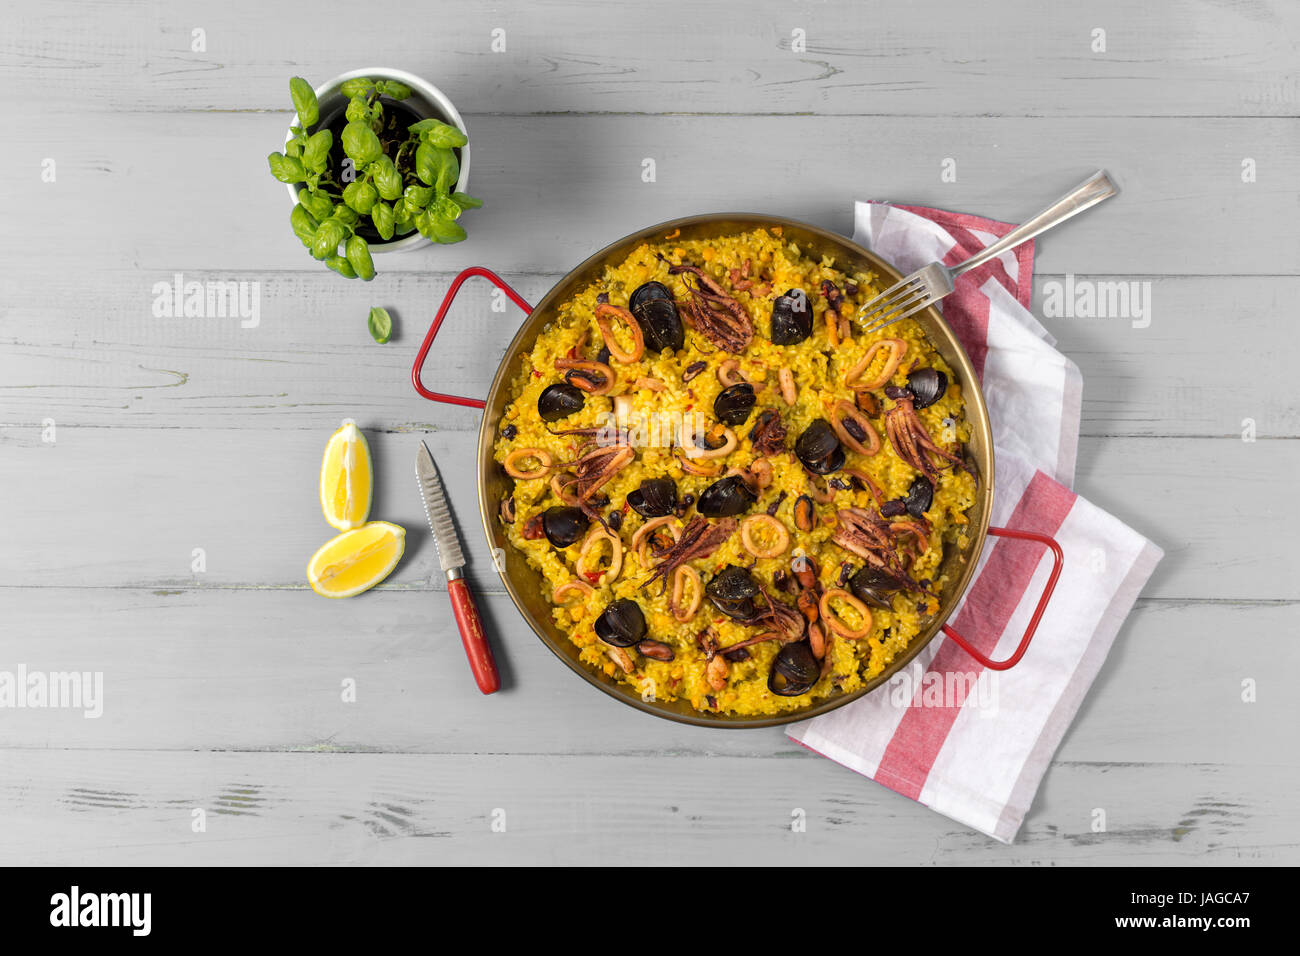 Seafood Paella in Traditional Pan on Rustic Wooden Table - Stock Image